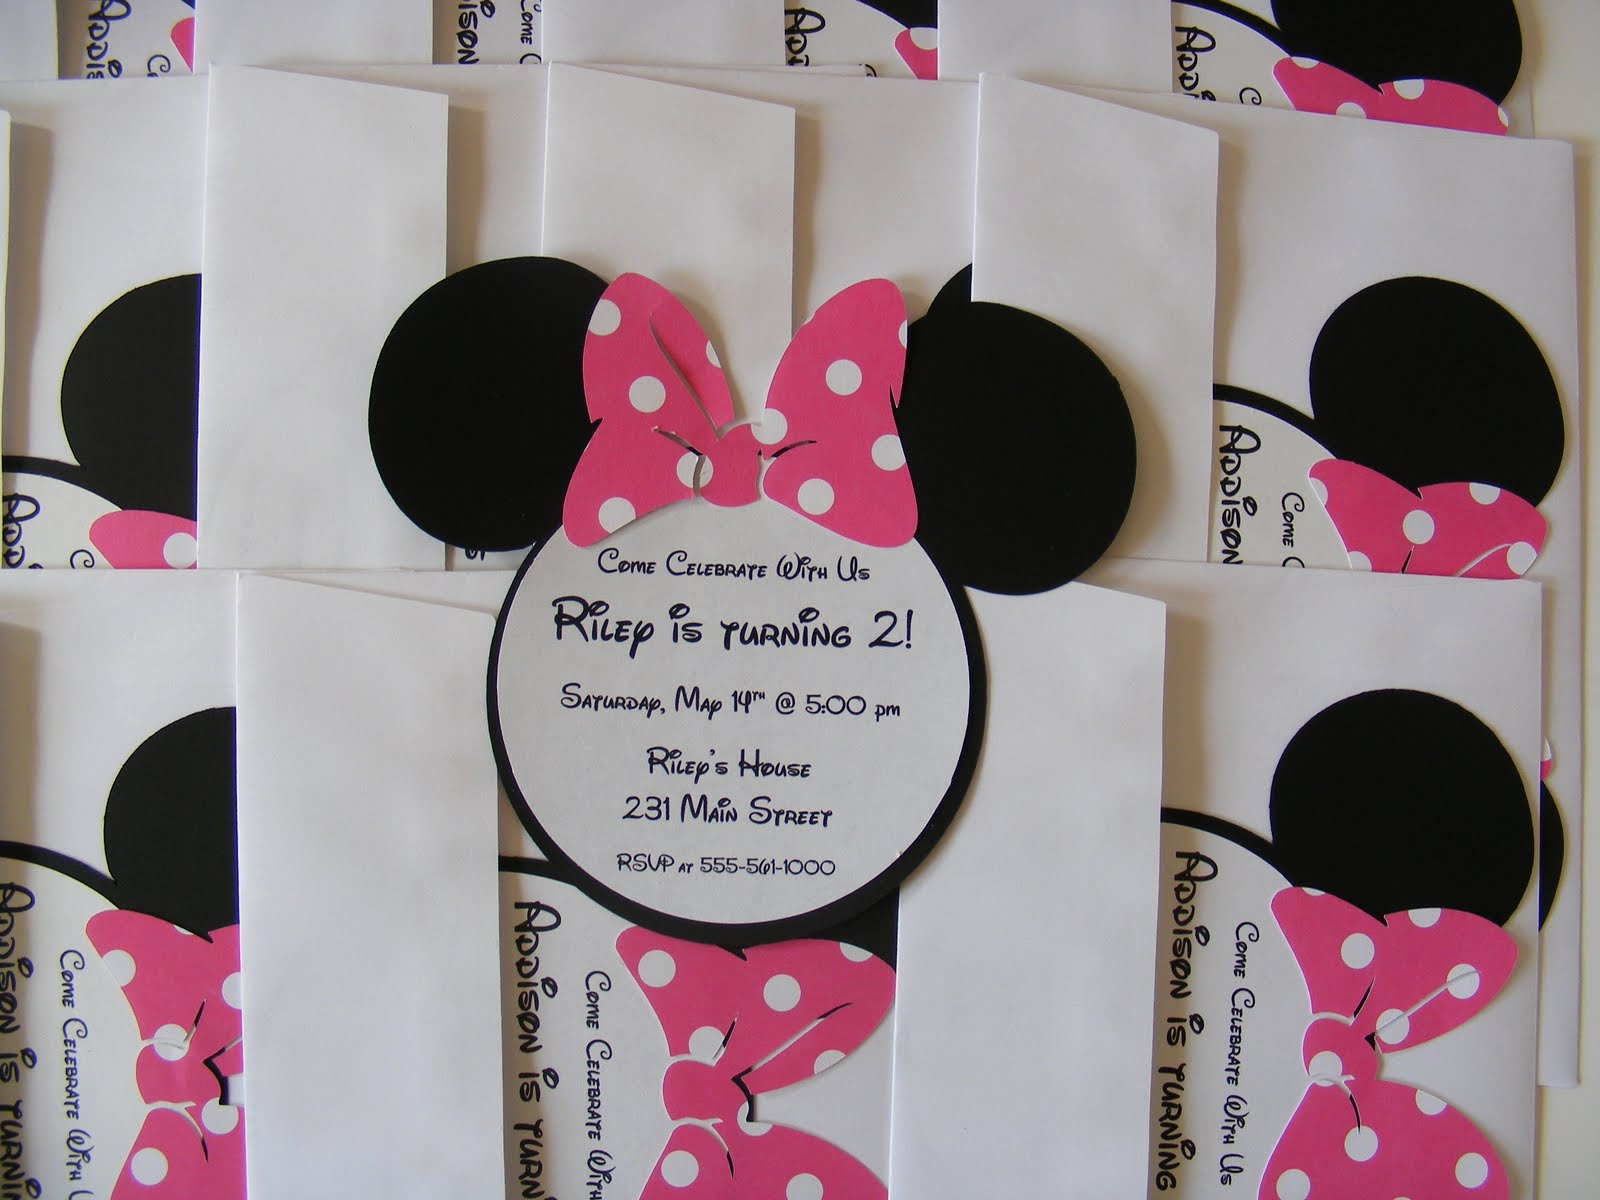 Minnie Mouse Birthday Invitations Awesome Whimsical Creations by Ann Minnie Mouse Birthday Party Ideas